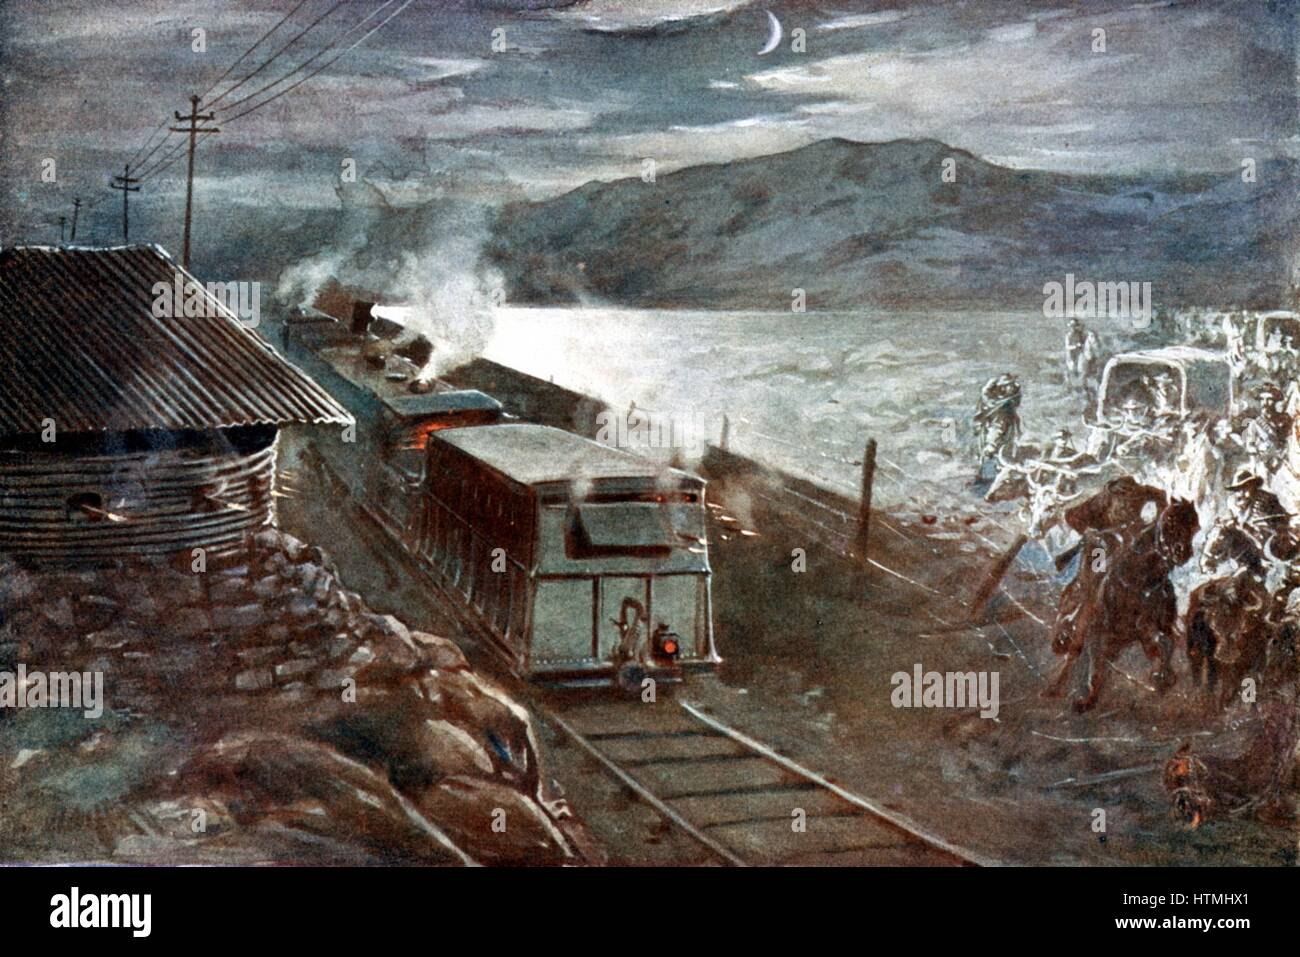 Boer War: Boer leader De Wet attempting to lead a party across a railway in face of fire from armoured train and - Stock Image